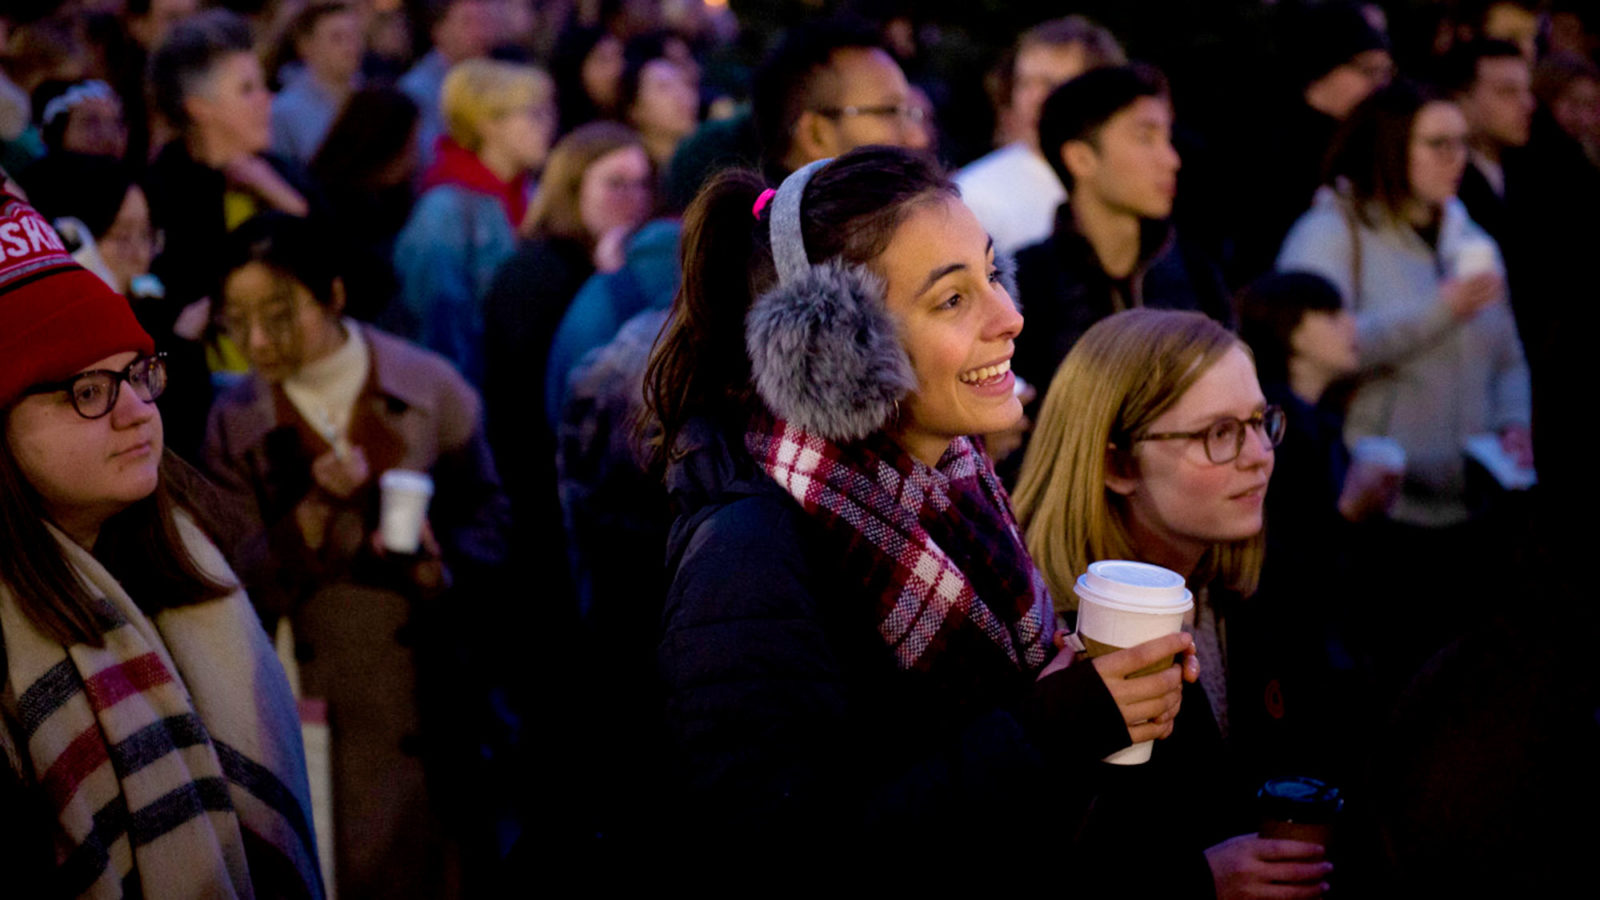 A female student looks at a performance with a smile amid a crowd of students.